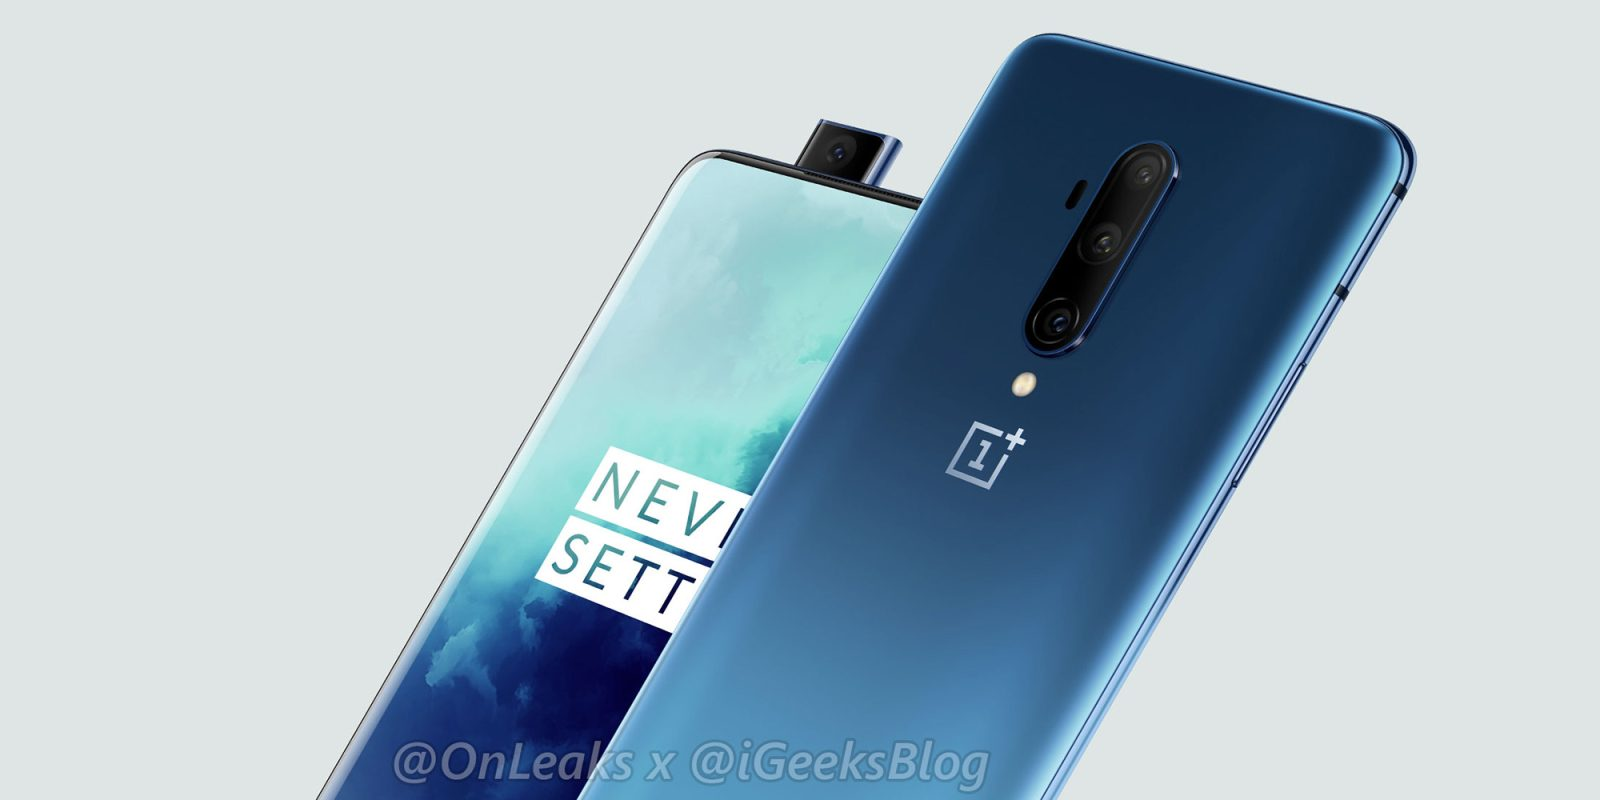 OnePlus 7T Pro official render leaks showing off the familiar design